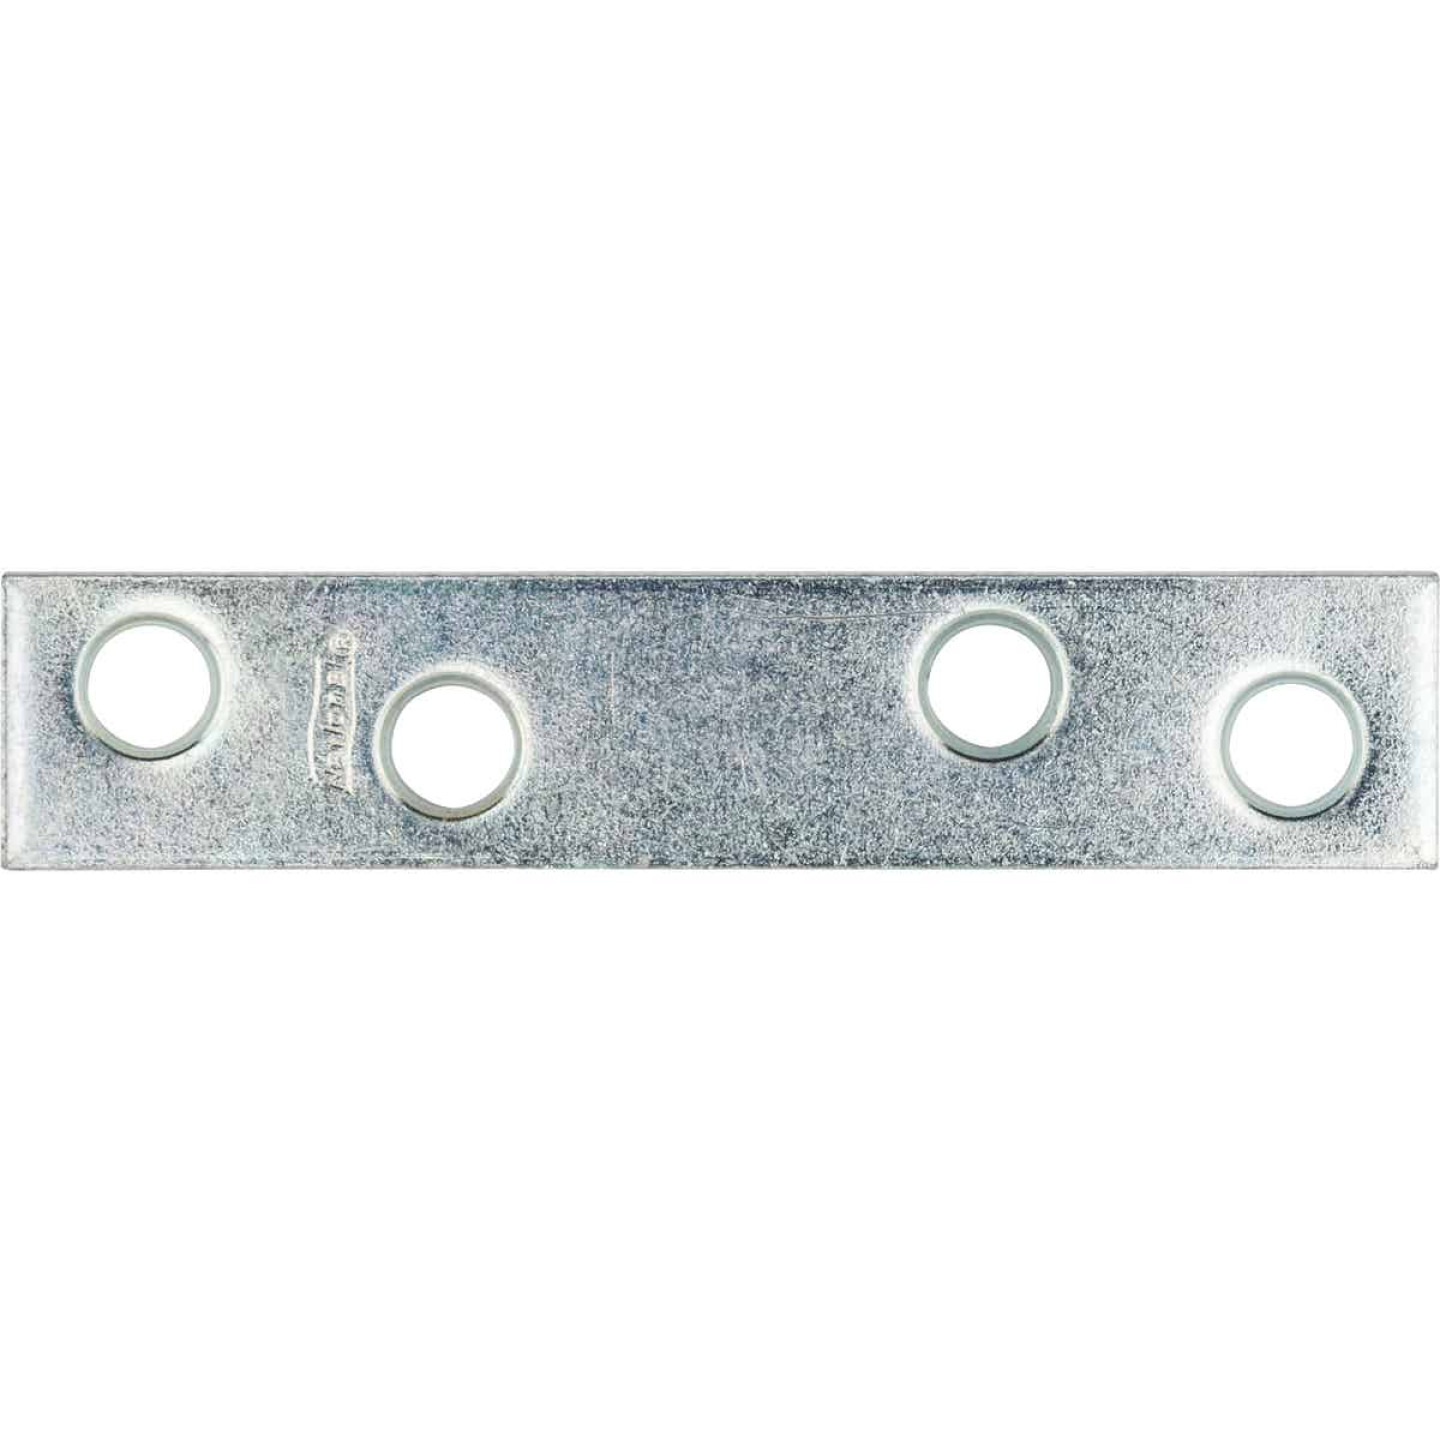 National Catalog 118 3 In. x 5/8 In. Zinc Steel Mending Brace Image 1